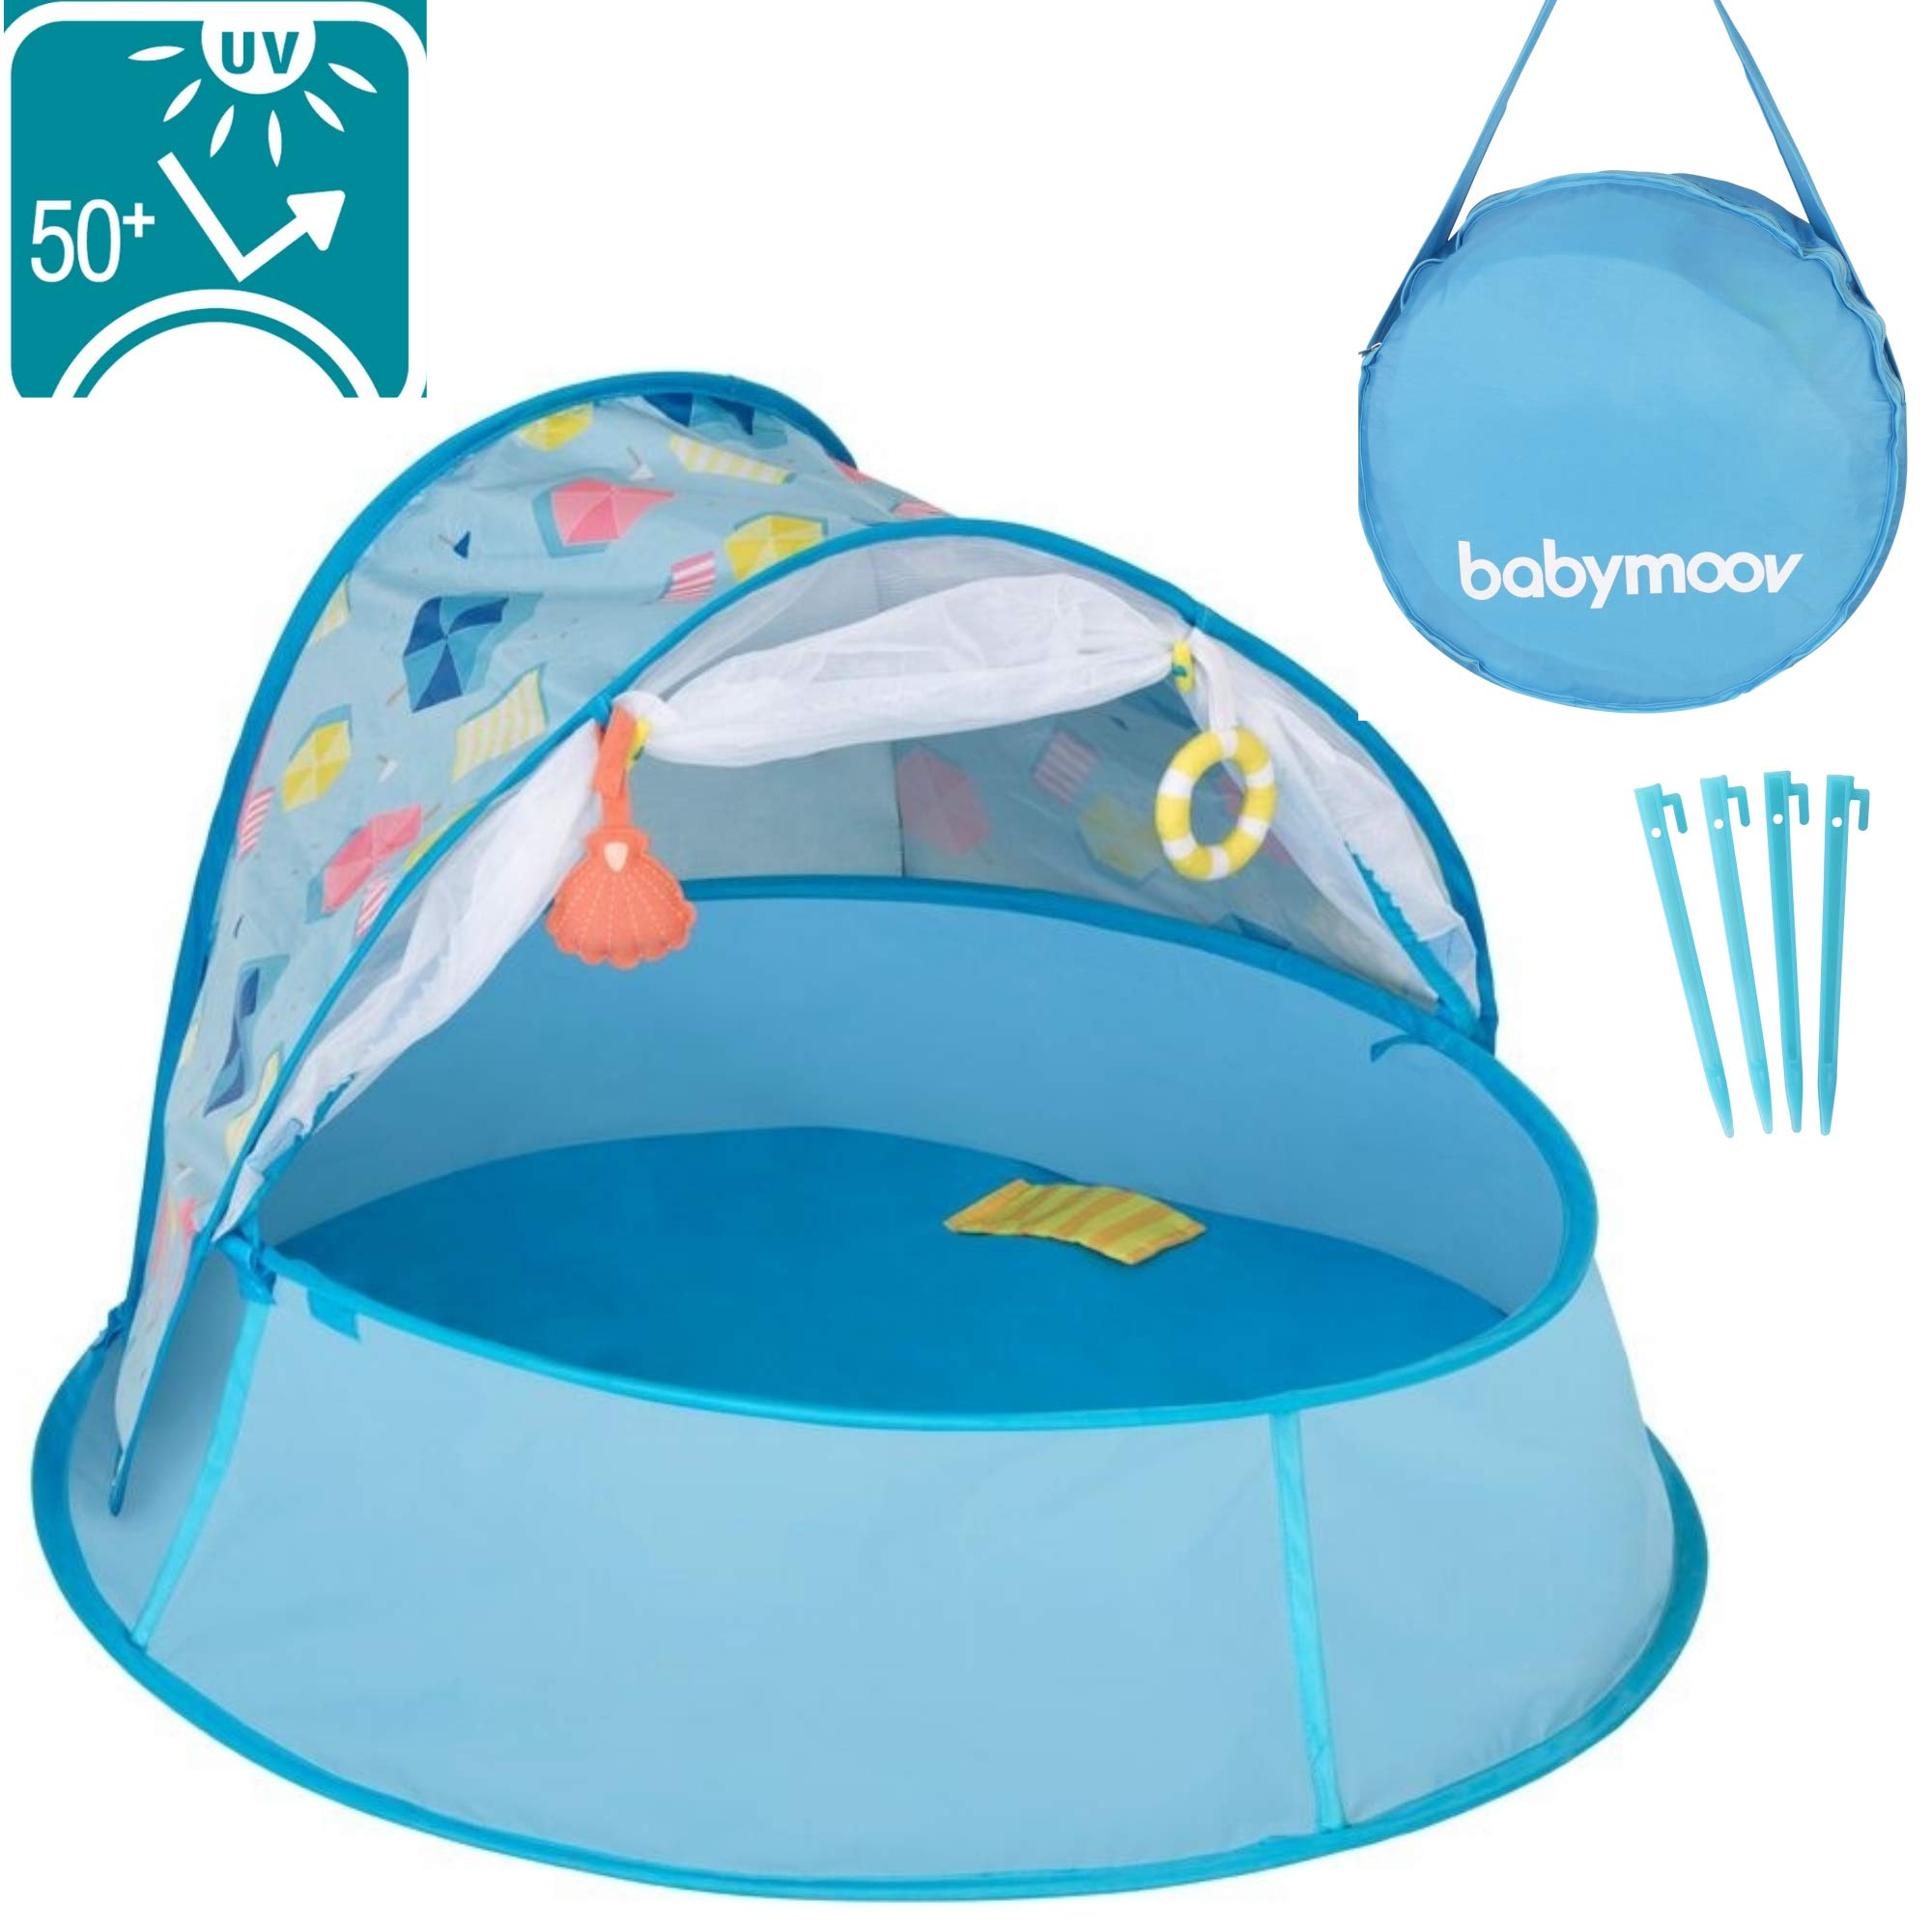 Babymoov Aquani Tent & Pool | 3 in 1 Pop Up Tent, Kiddie Pool and Play Yard (Summer 2019 Essential)